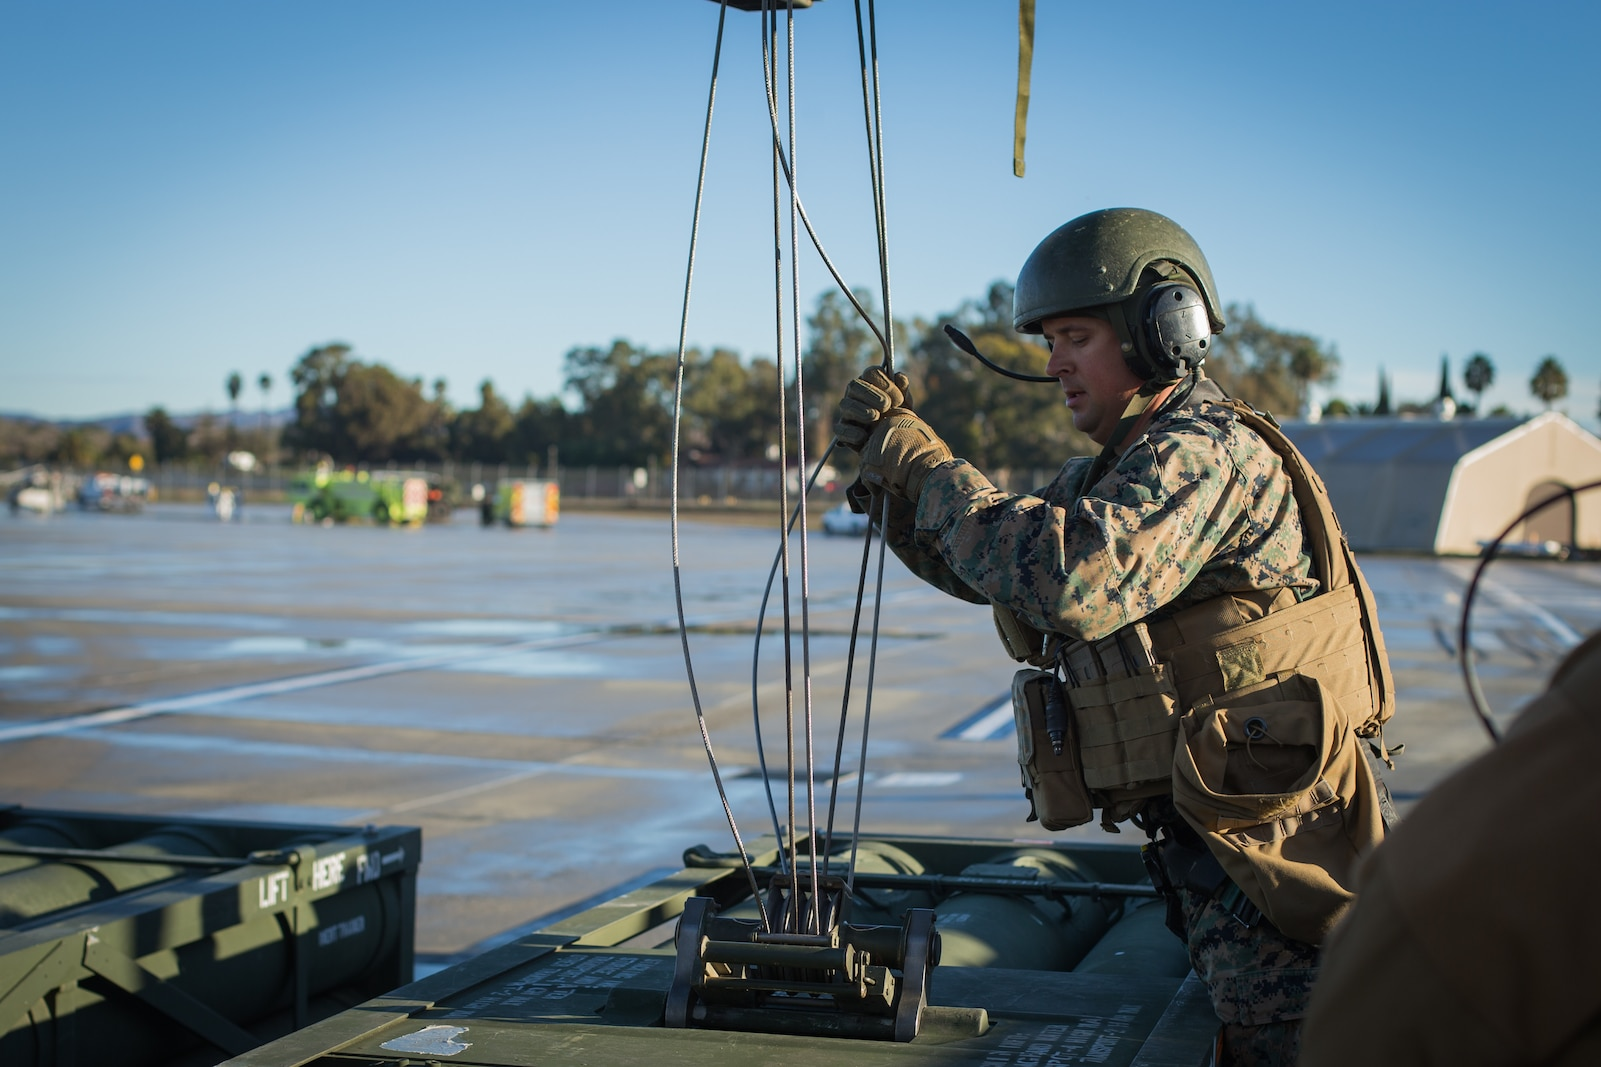 U.S. Marine Corps Staff Sgt. Shane Armstrong, an artillery cannon operator with 5th Battalion, 11th Marine Regiment, 1st Marine Division, secures a stack of M270 rockets to an M142 high-mobility artillery rocket system during exercise Steel Knight (SK) 19 at Marine Corps Base Camp Pendleton, California, Dec. 7, 2018.